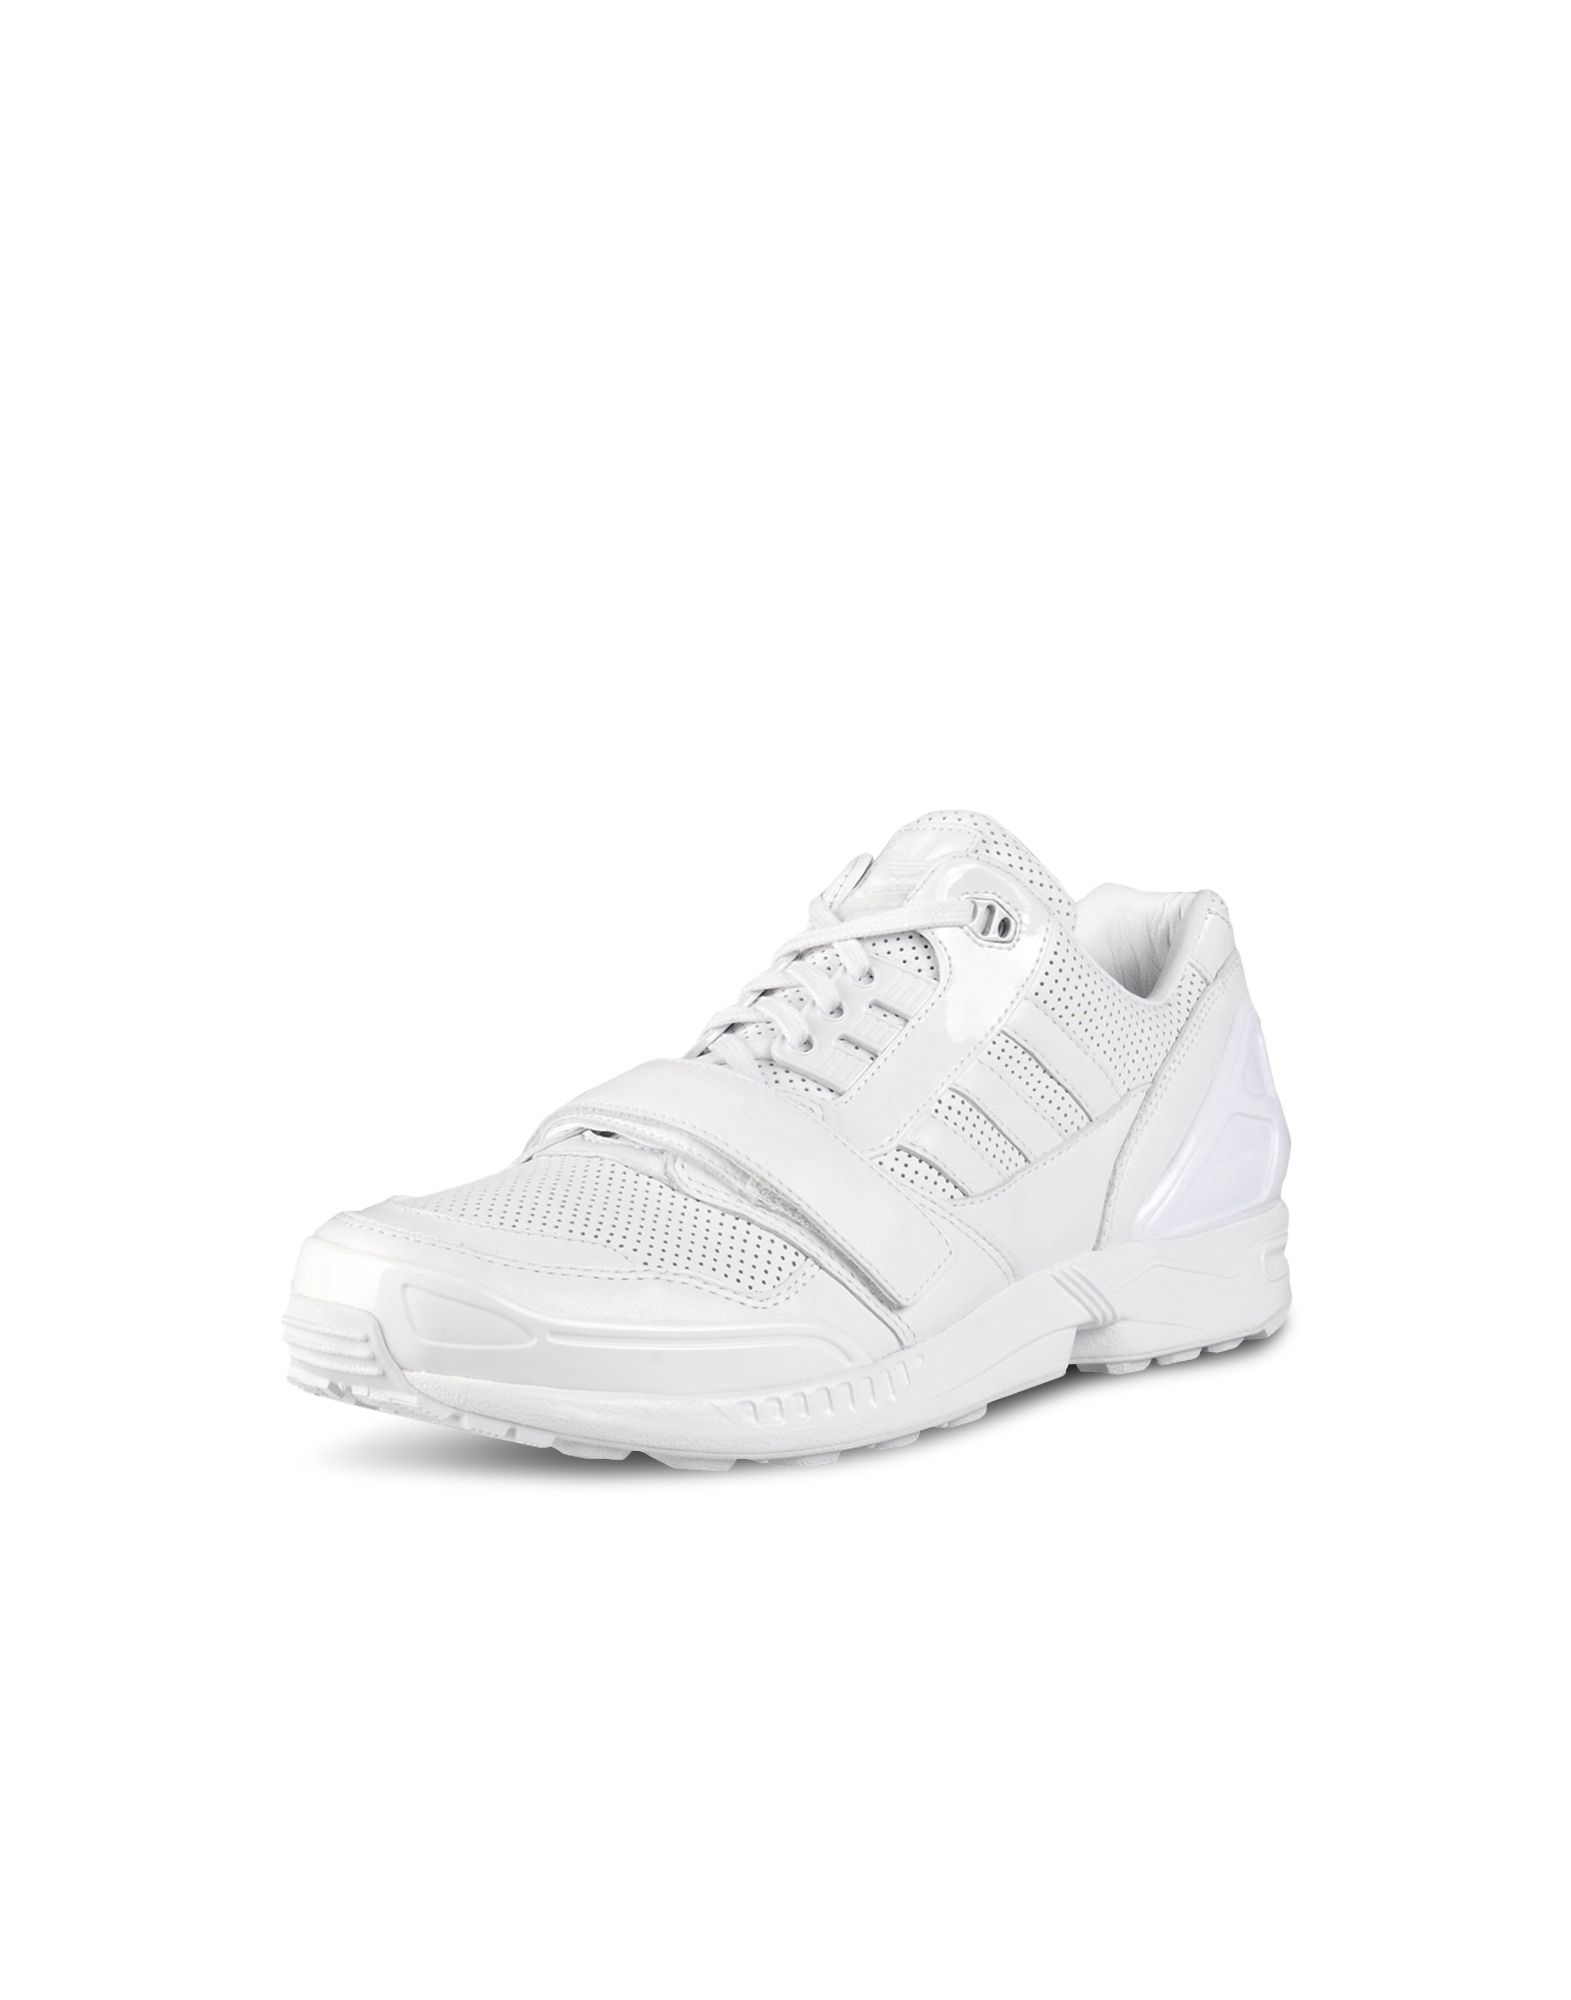 adidas zx 200 kids shoes